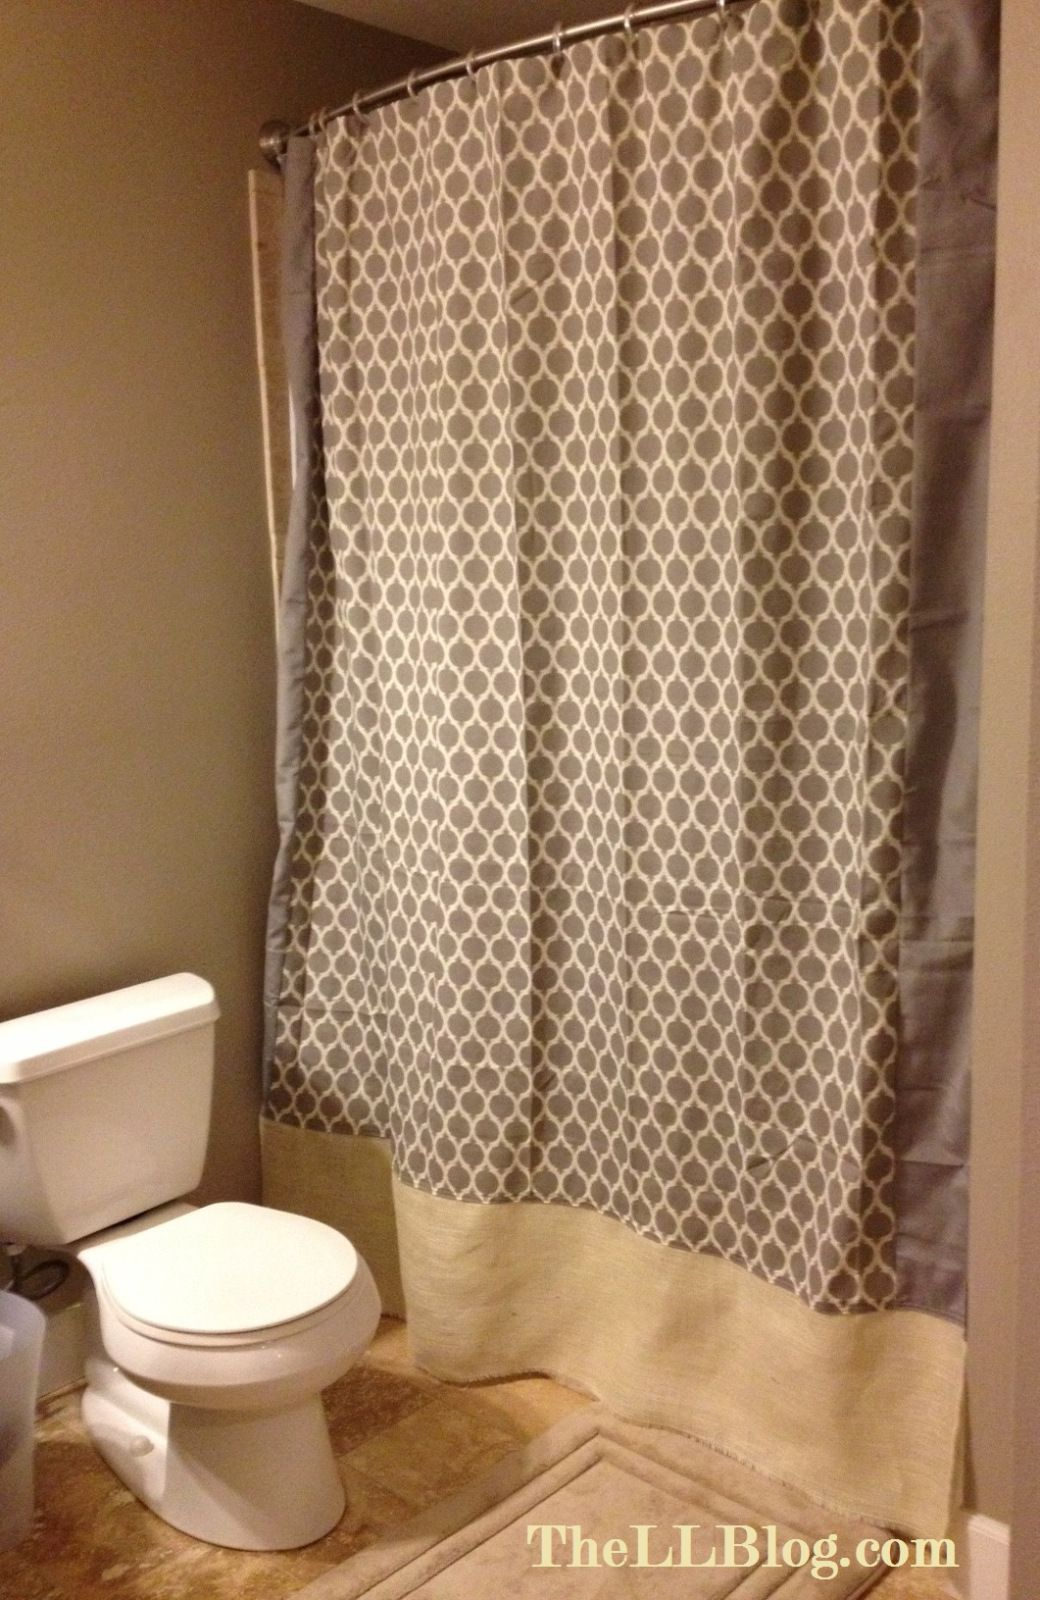 Shower Curtain Love Diy Tutorial To Making A Longer And Adding Drama The Bathroom Really Pretty Look